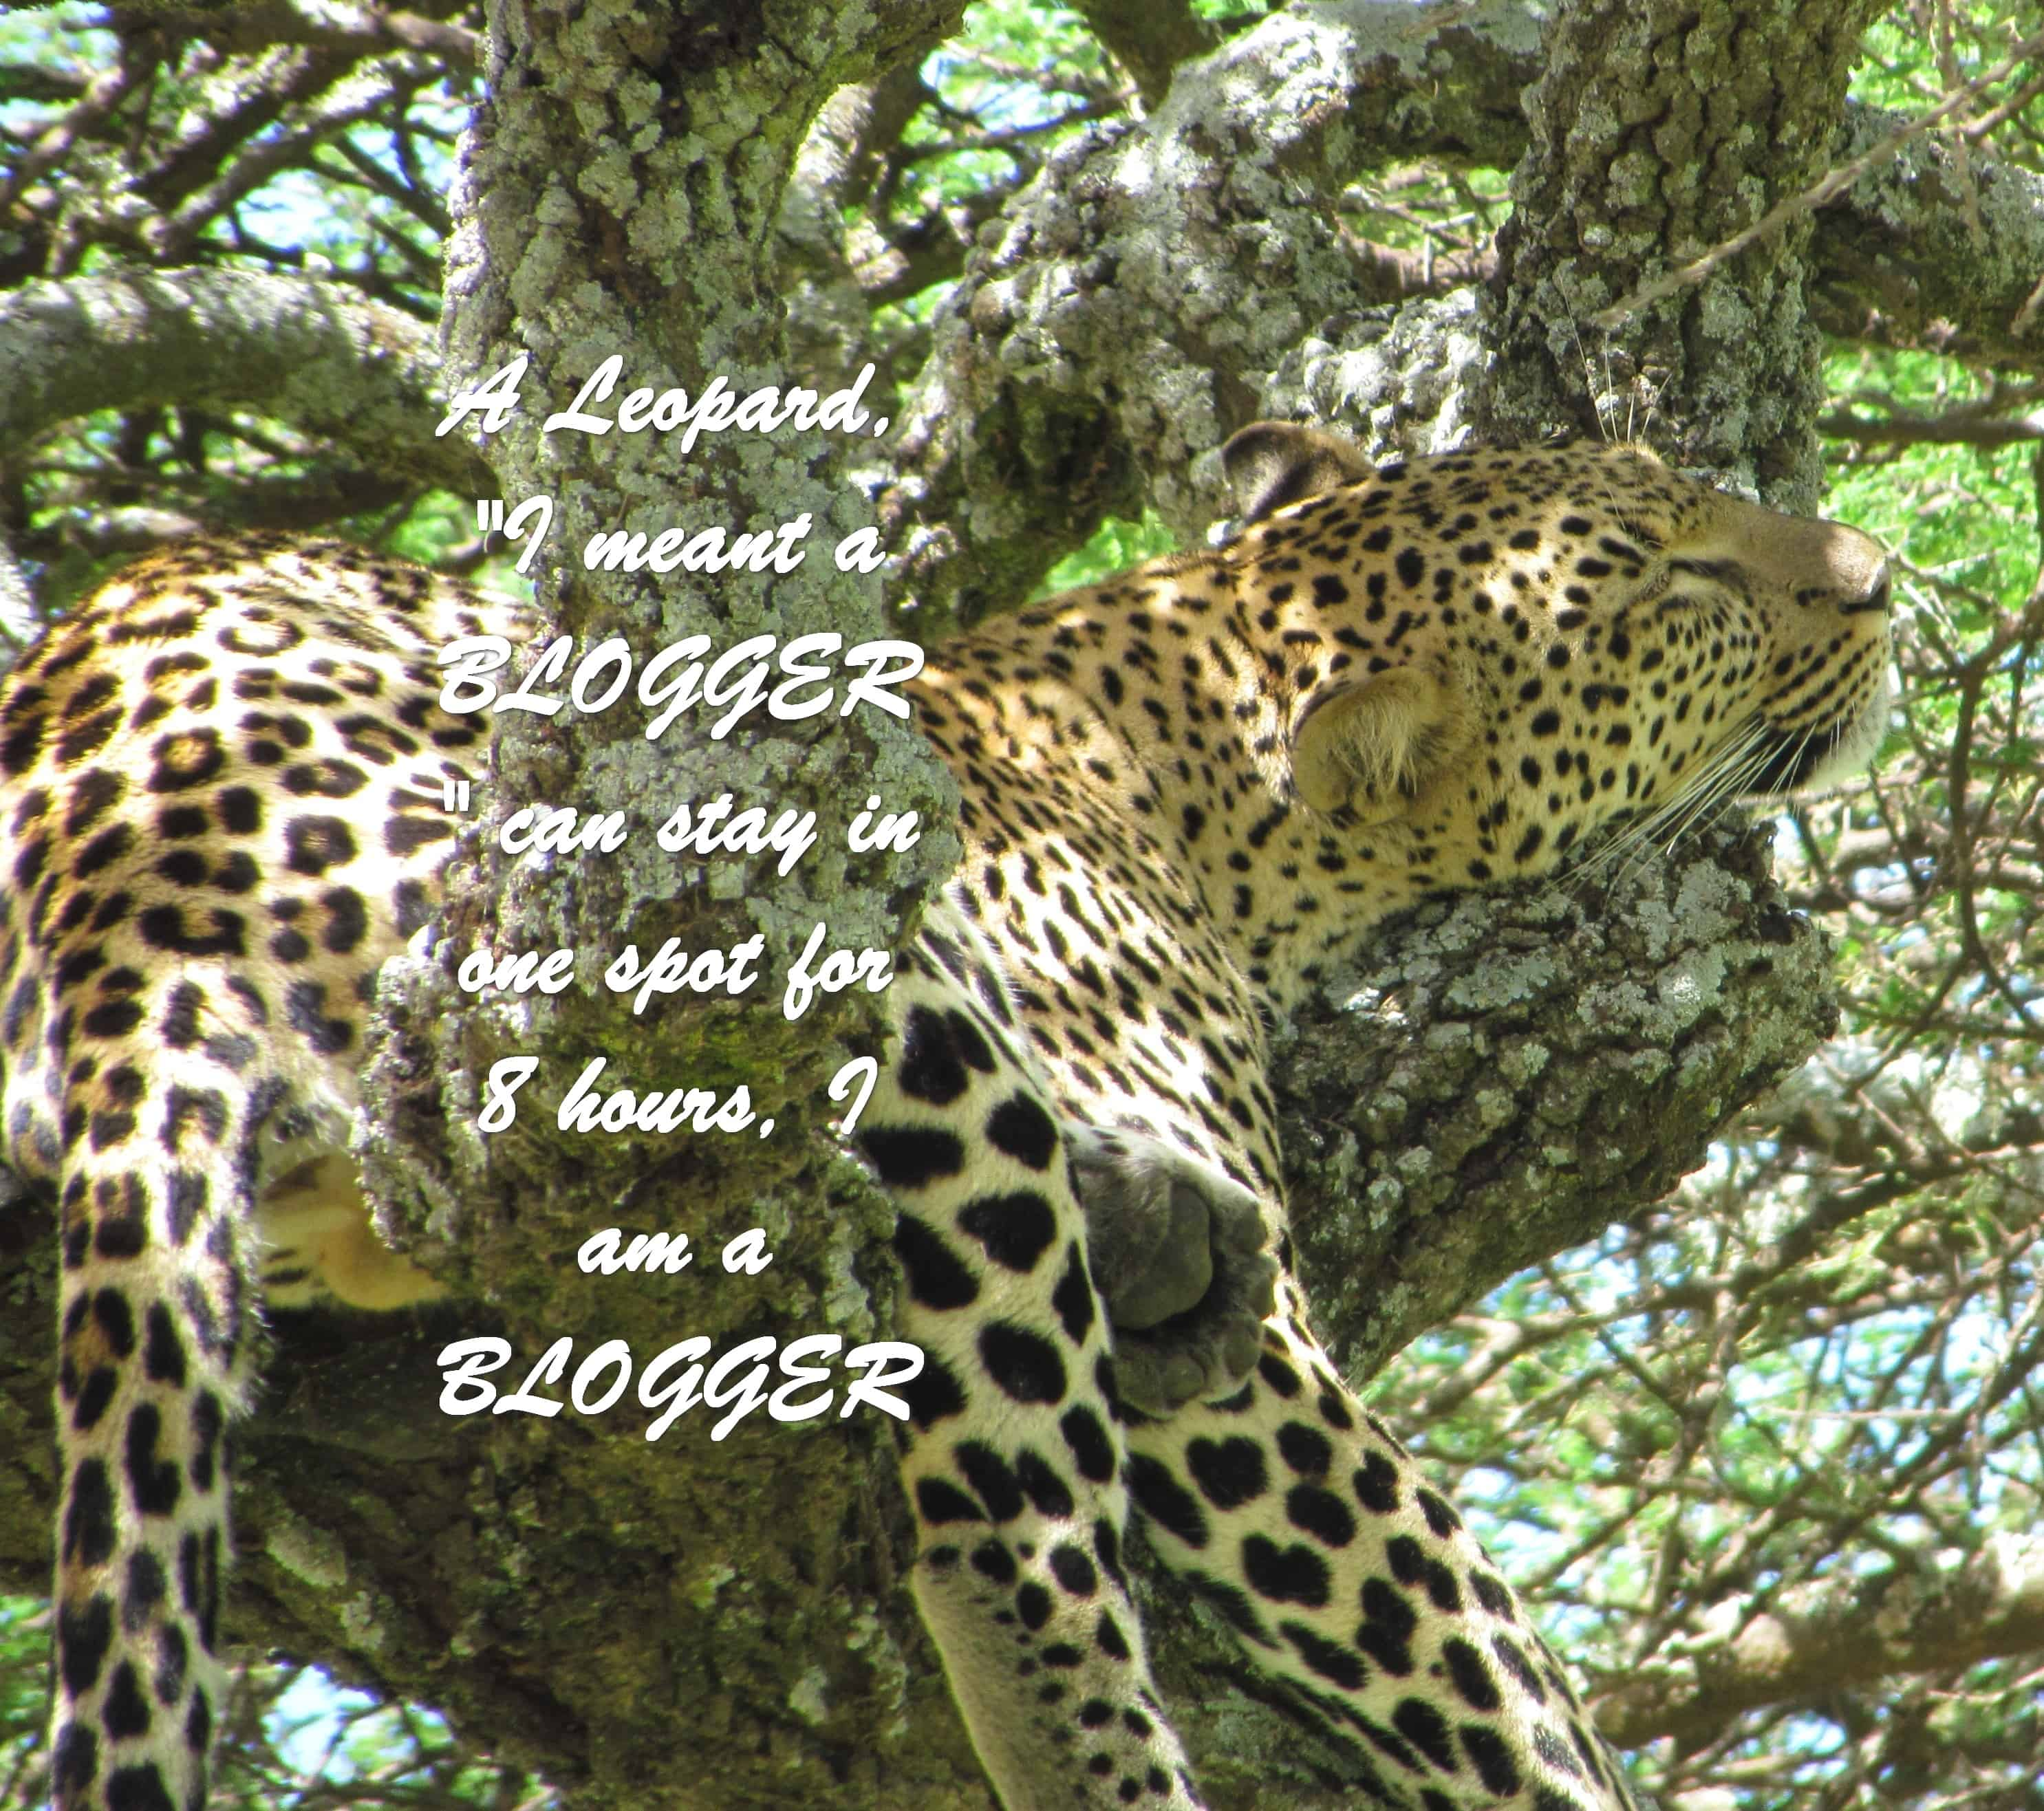 "A leopard ""I meant a BLOGGER"" can stay in one spot for 8 hours, I am a BLOGGER"